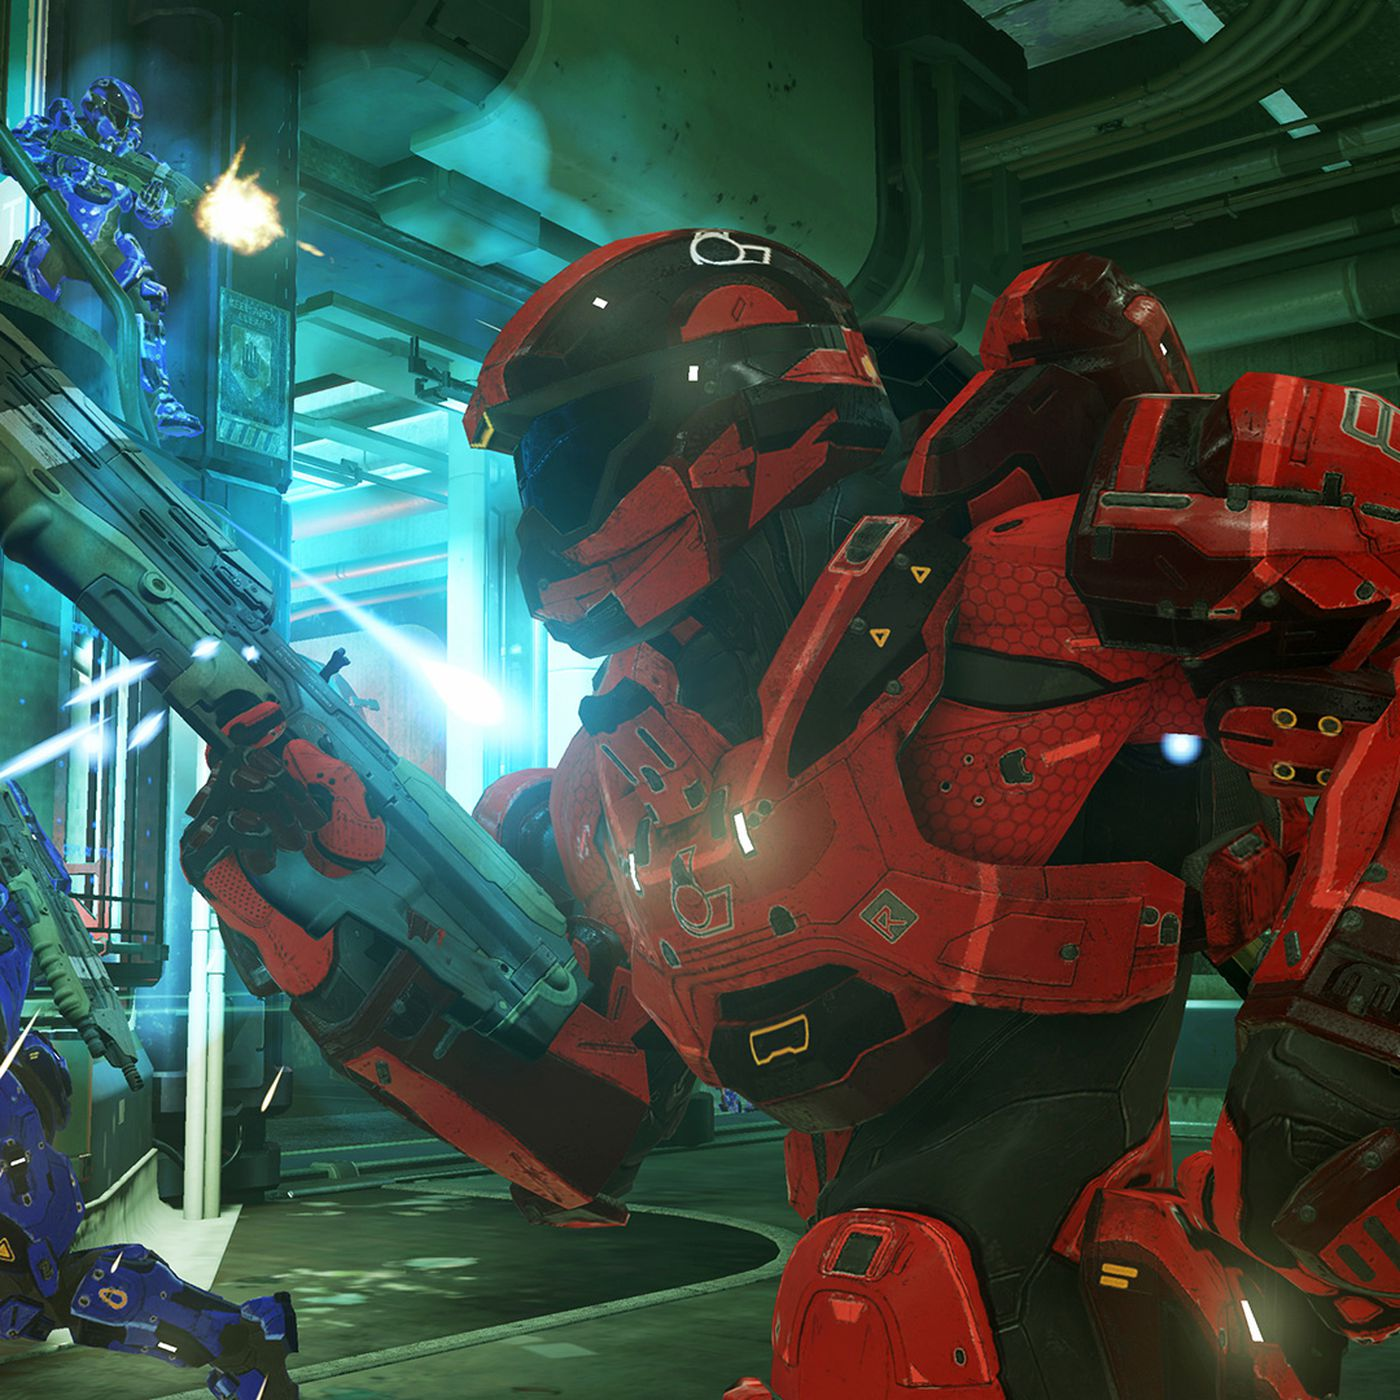 Halo 5: Guardians is the first main game in the series to avoid an M